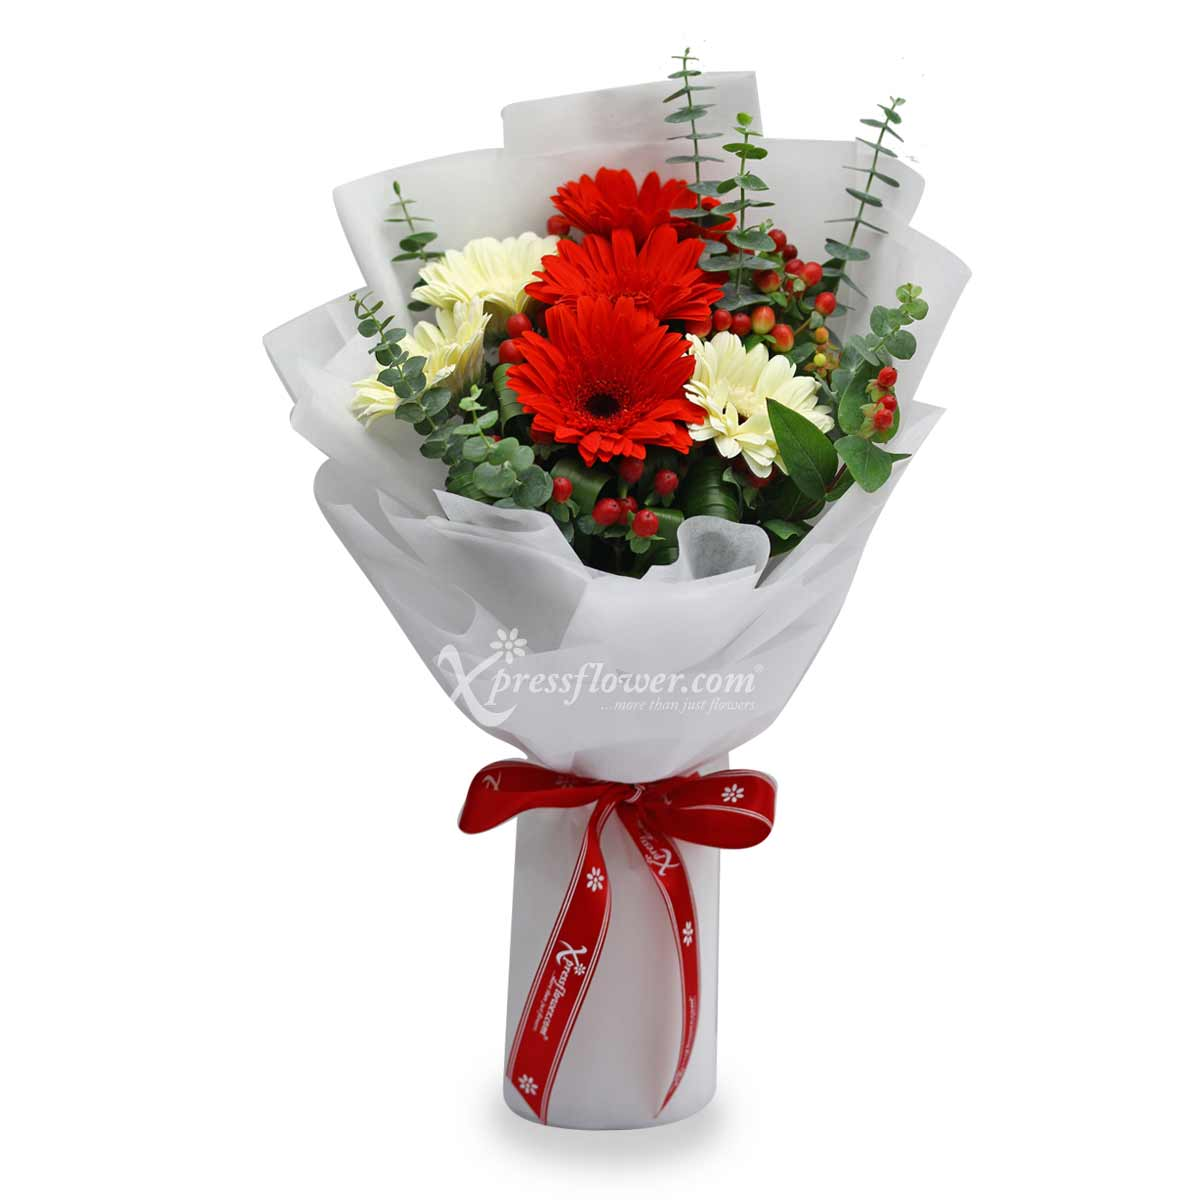 XMM1981 Chimney Treats flower and gift